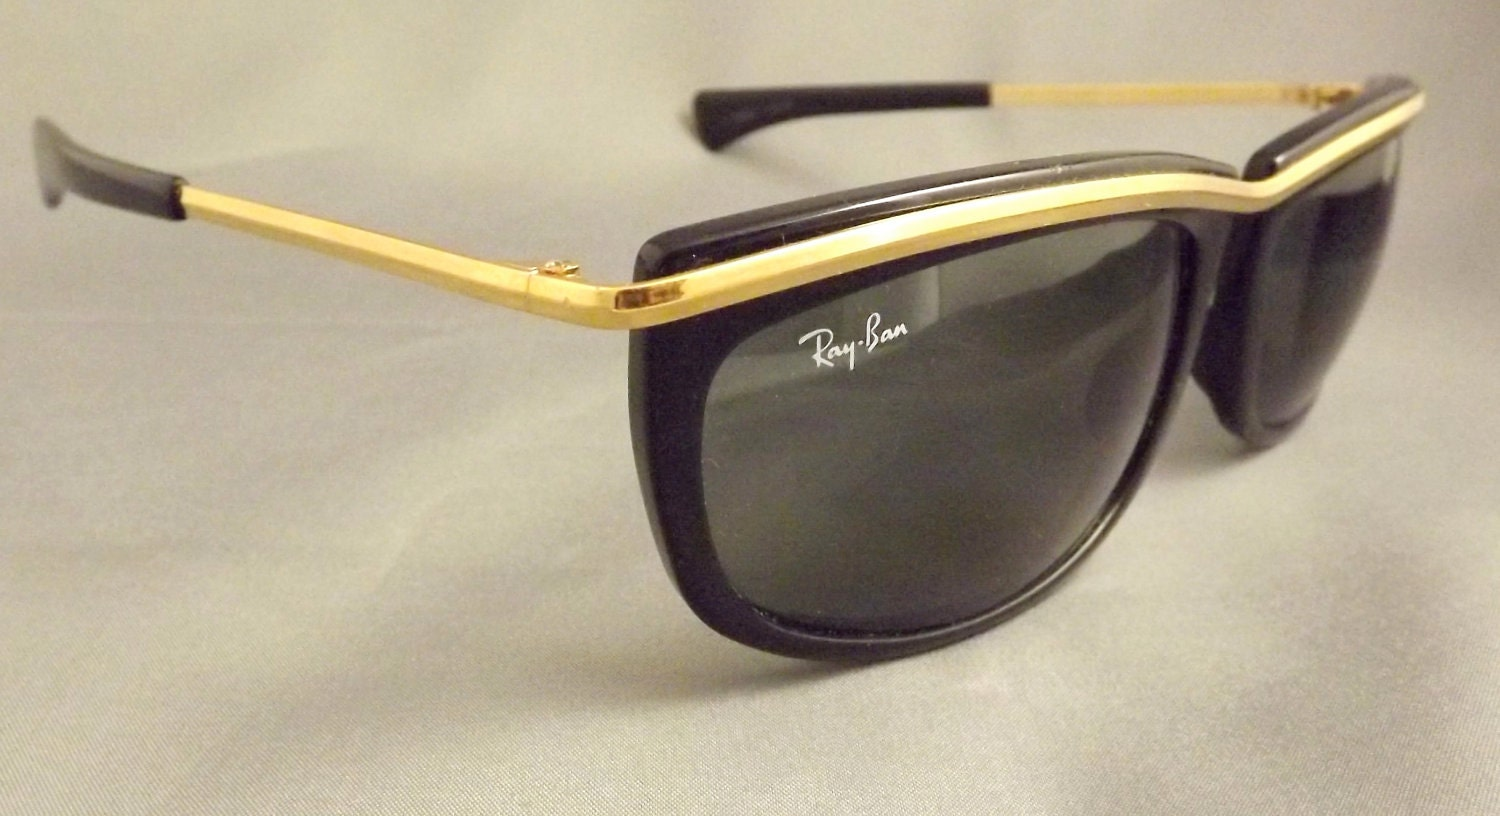 Rare Ray Ban Olympian Vintage Sunglasses With Case1990s